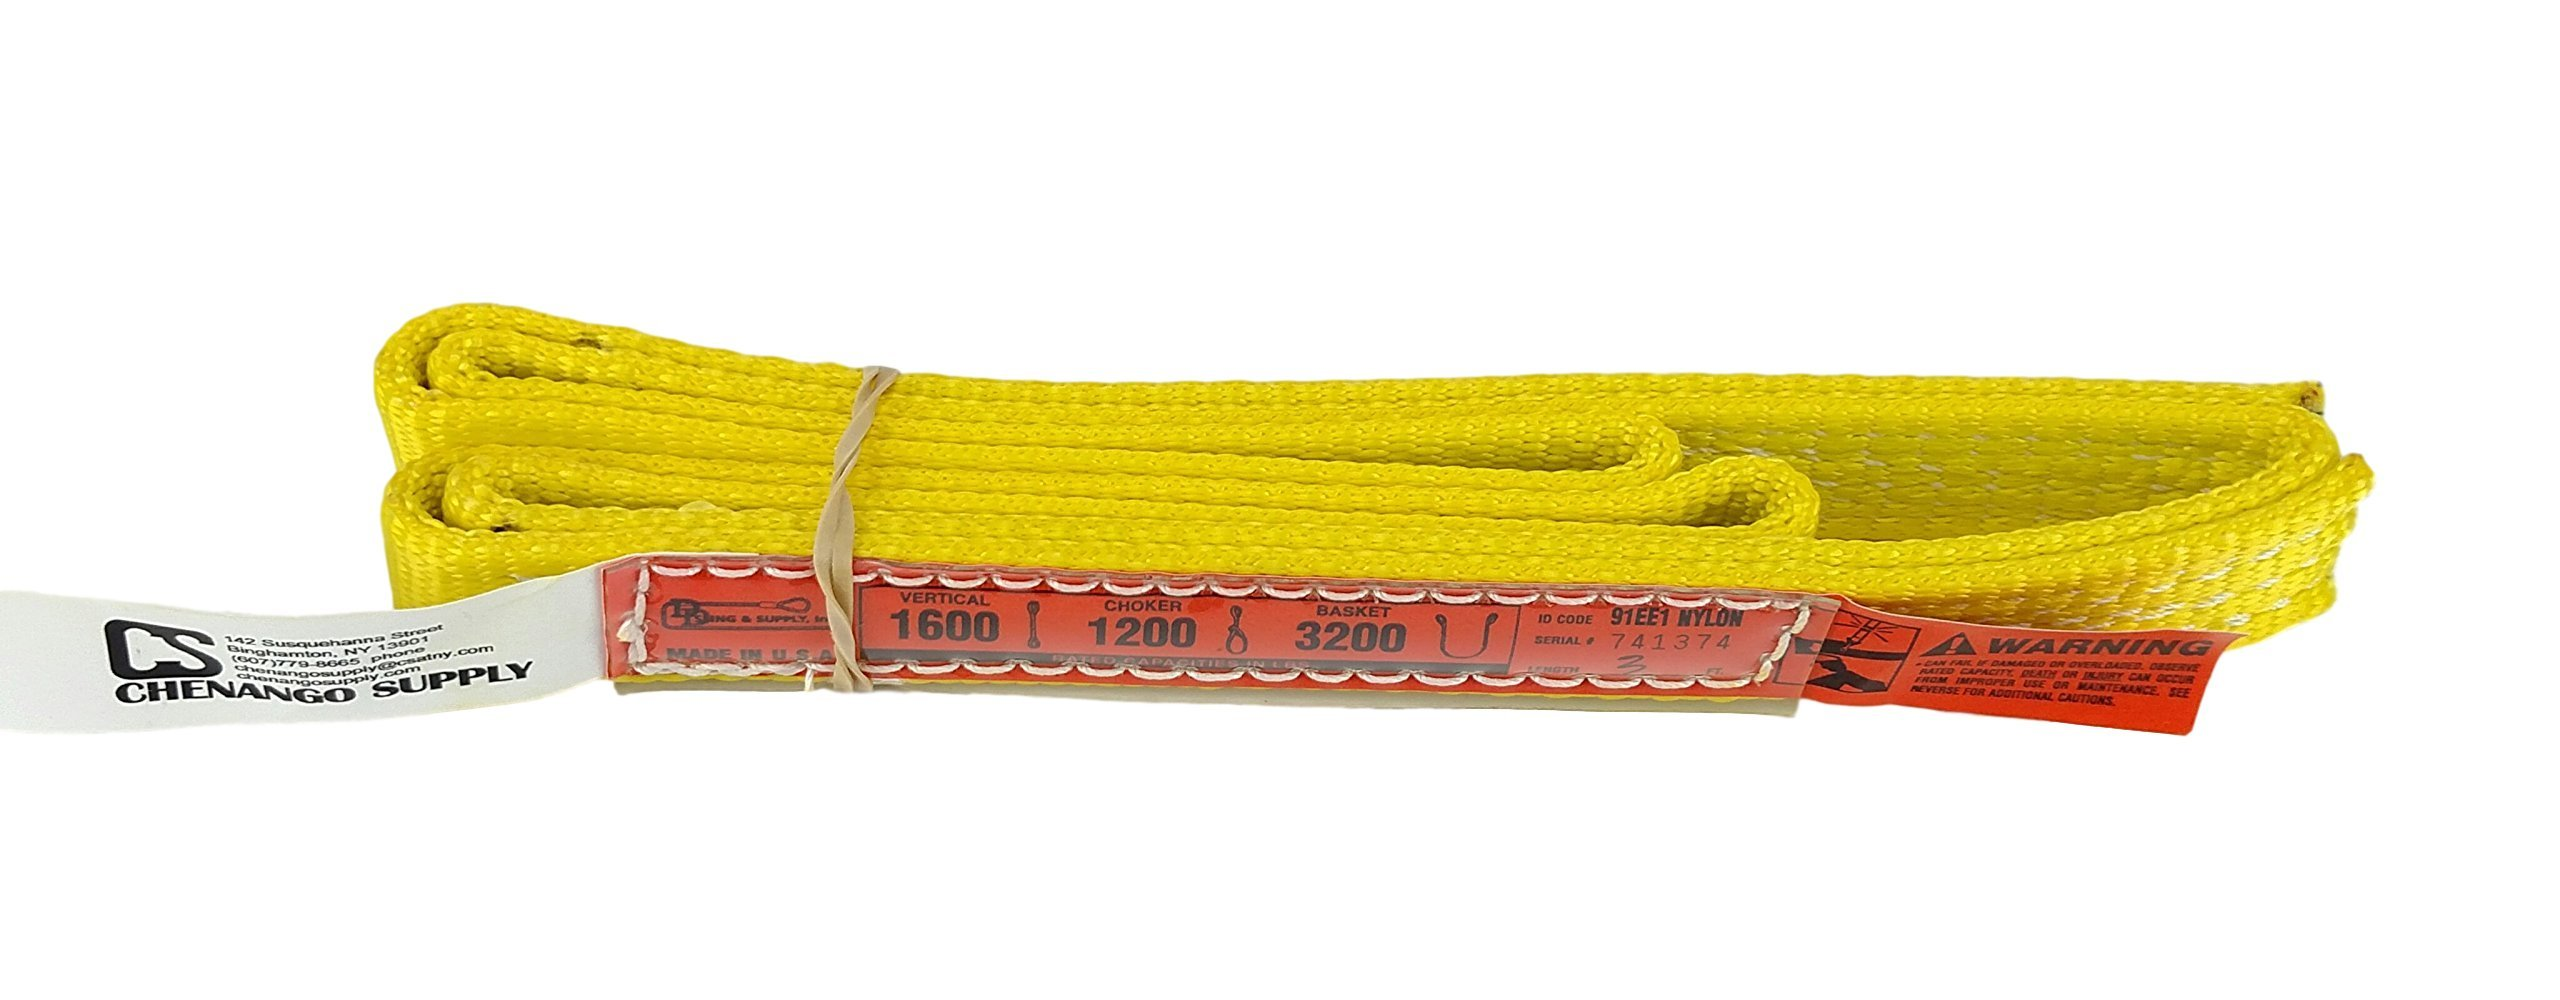 DD Sling. Multiple Lengths! (100% Made in USA) 1'' width, 1 Ply, Nylon Lifting Sling, Eye & Eye, Heavy Duty (900 webbing), 1,600 lbs Vertical, 1,200 Choke, 3,200 Basket (1''x3') by DD Sling & Supply, Inc.